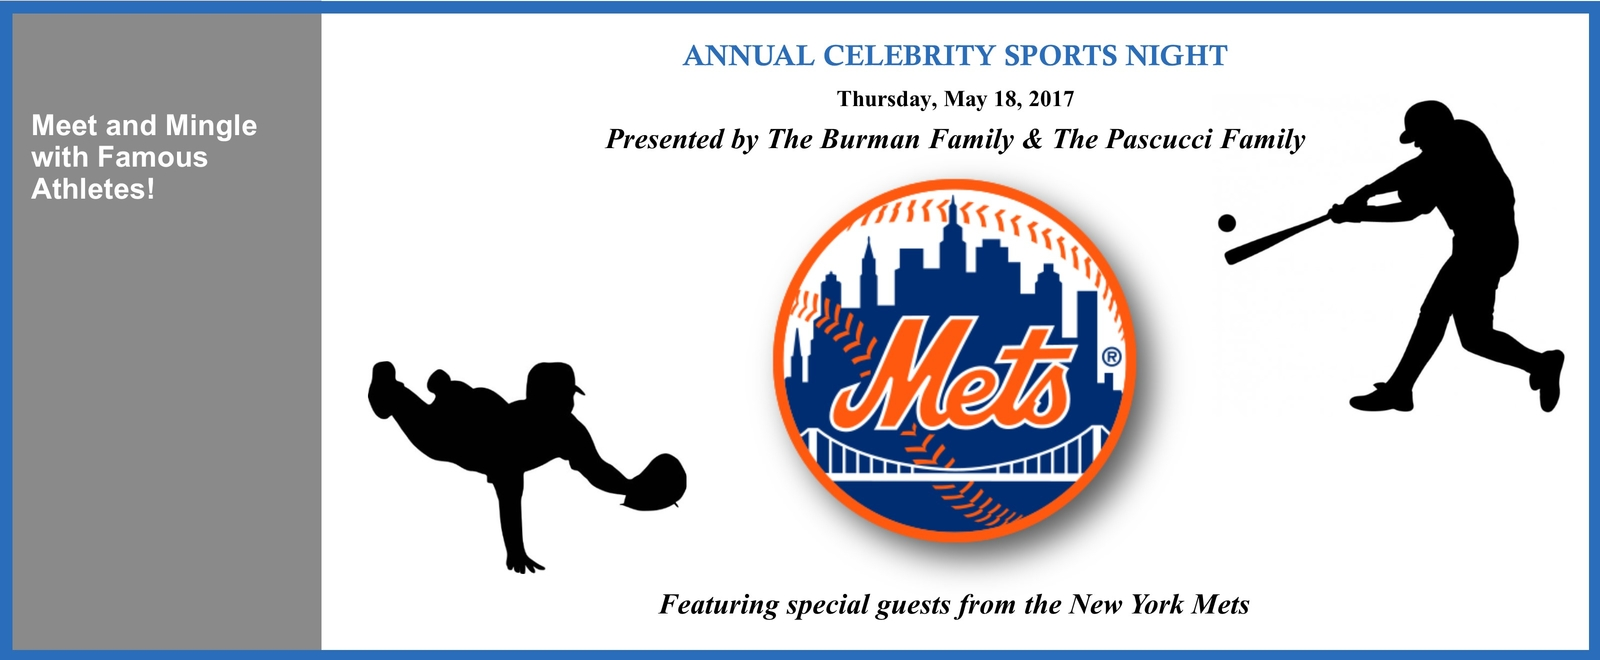 Annual Celebrity Sports Night - Thursday, May 18, 2017 - Presented by The Burman Family and The Pascucci Family - Featuring special guests from the NY Mets.